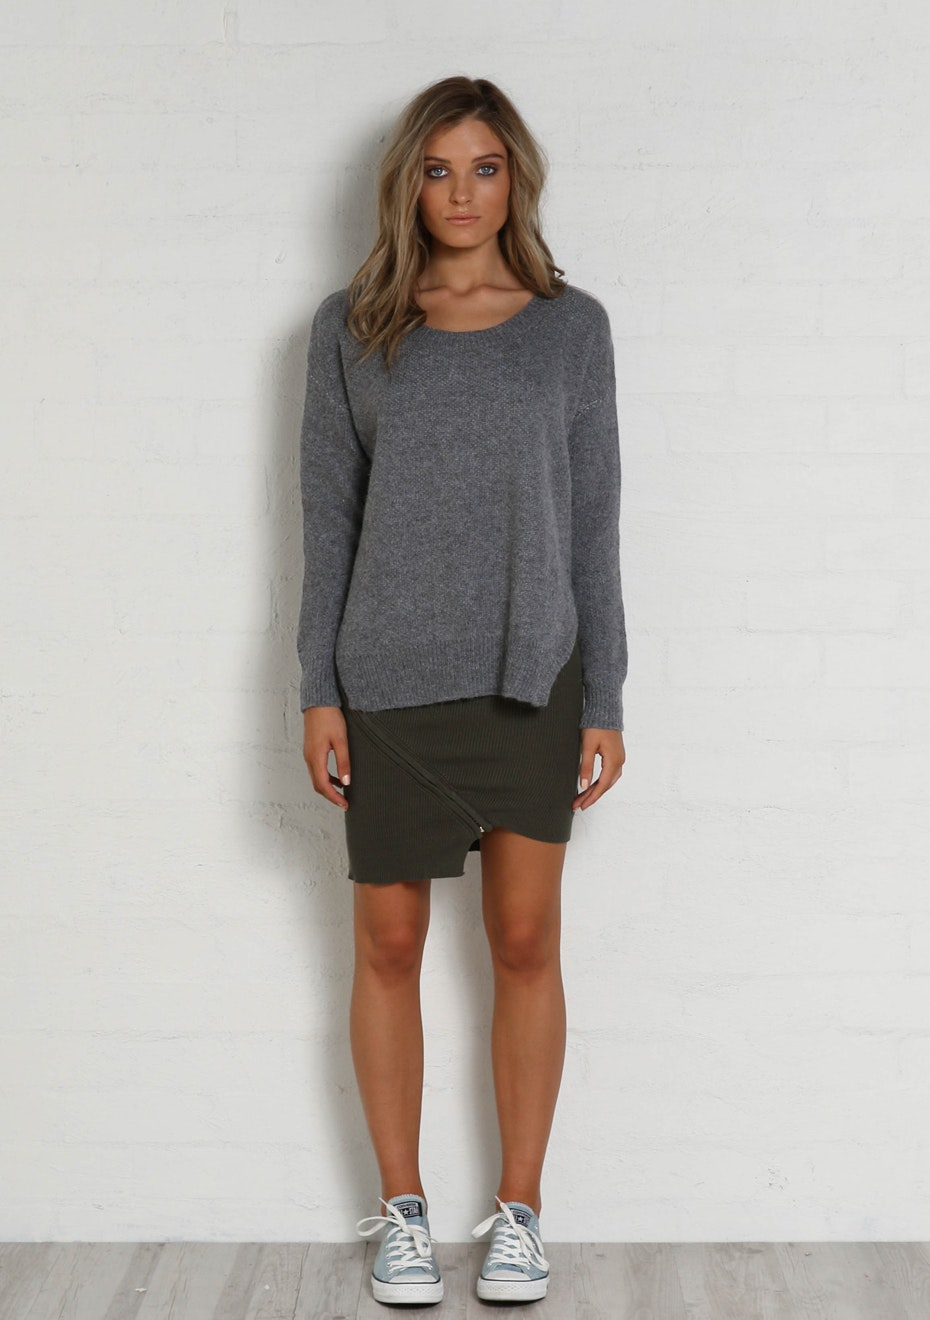 Madison - FRANKIE SCOOP KNIT - GREY